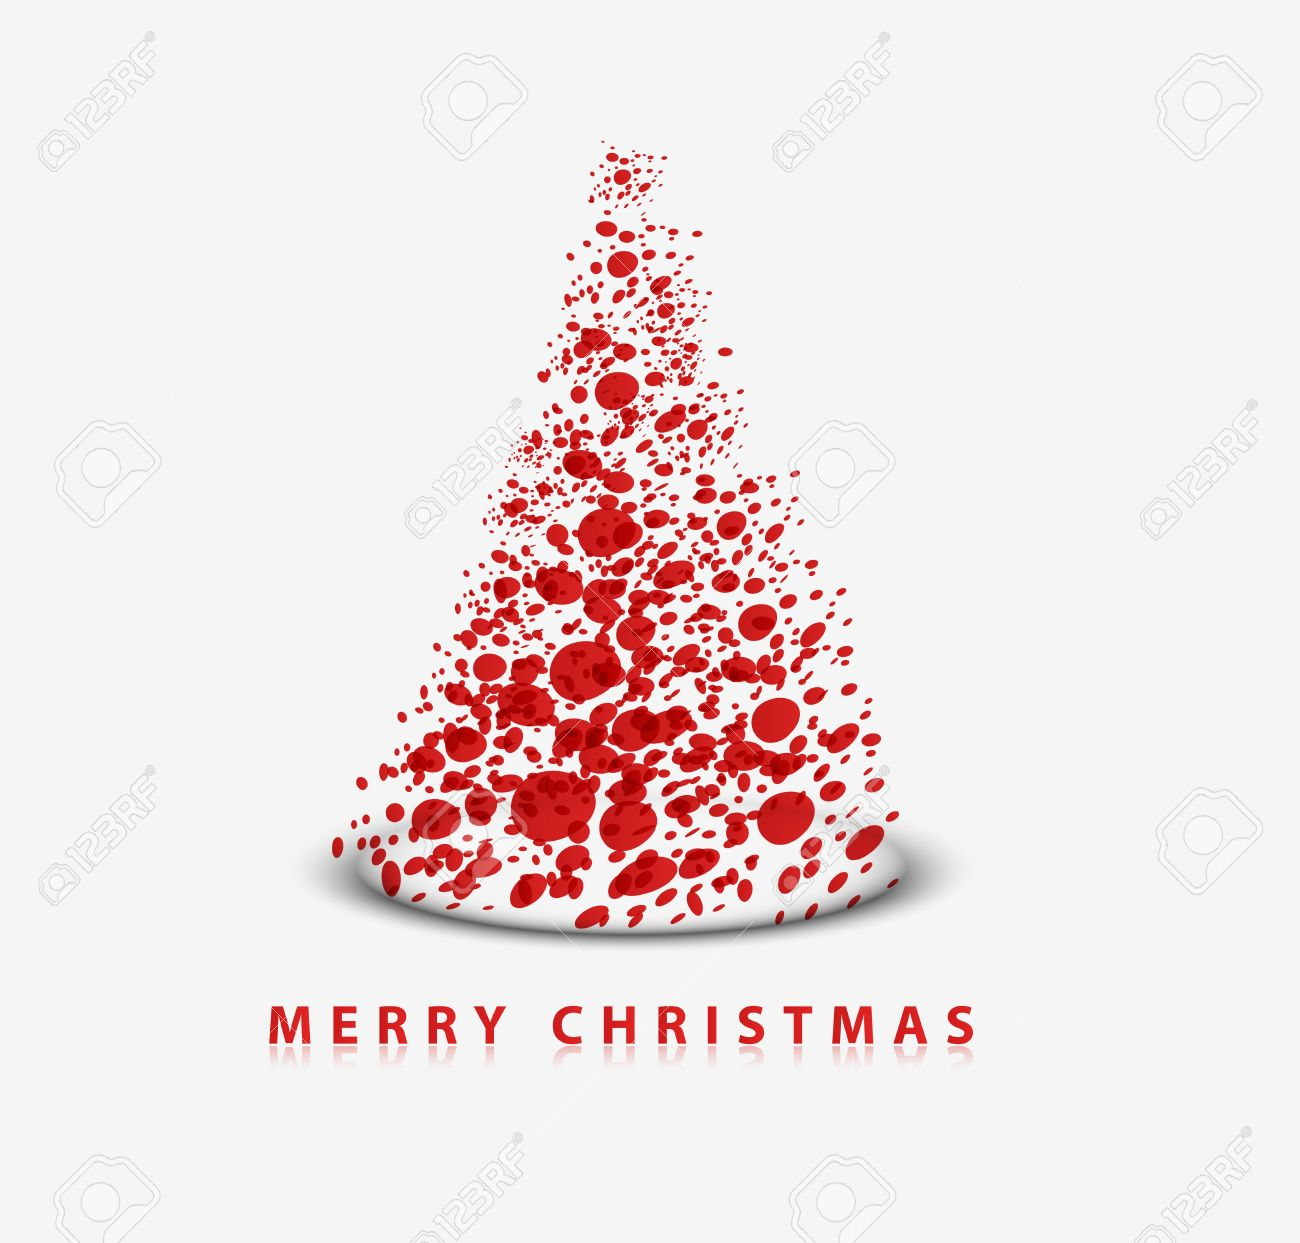 modern abstract christmas tree background, illustration royalty free